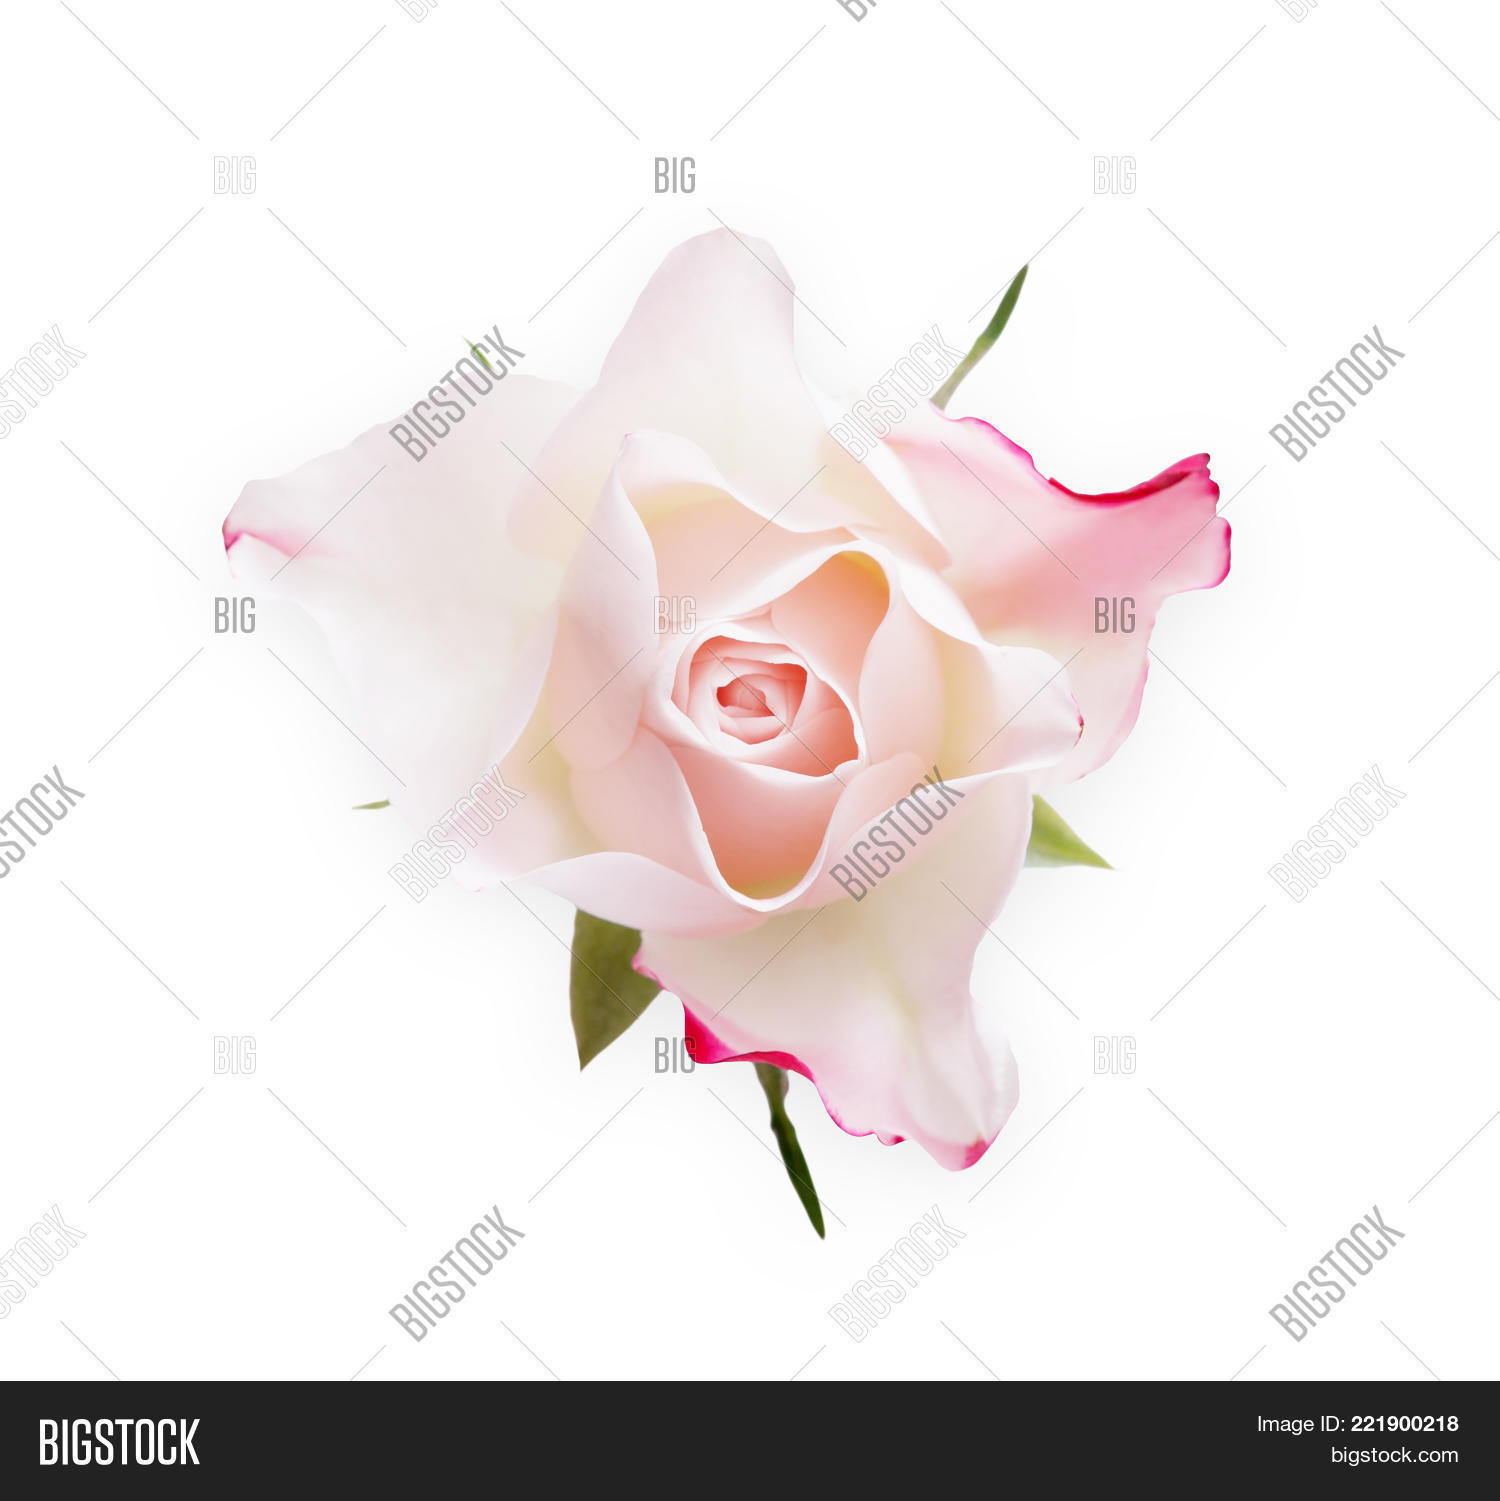 White rose flower closeup isolated image photo bigstock white rose flower closeup isolated on white background top view pale pink bud as buycottarizona Choice Image